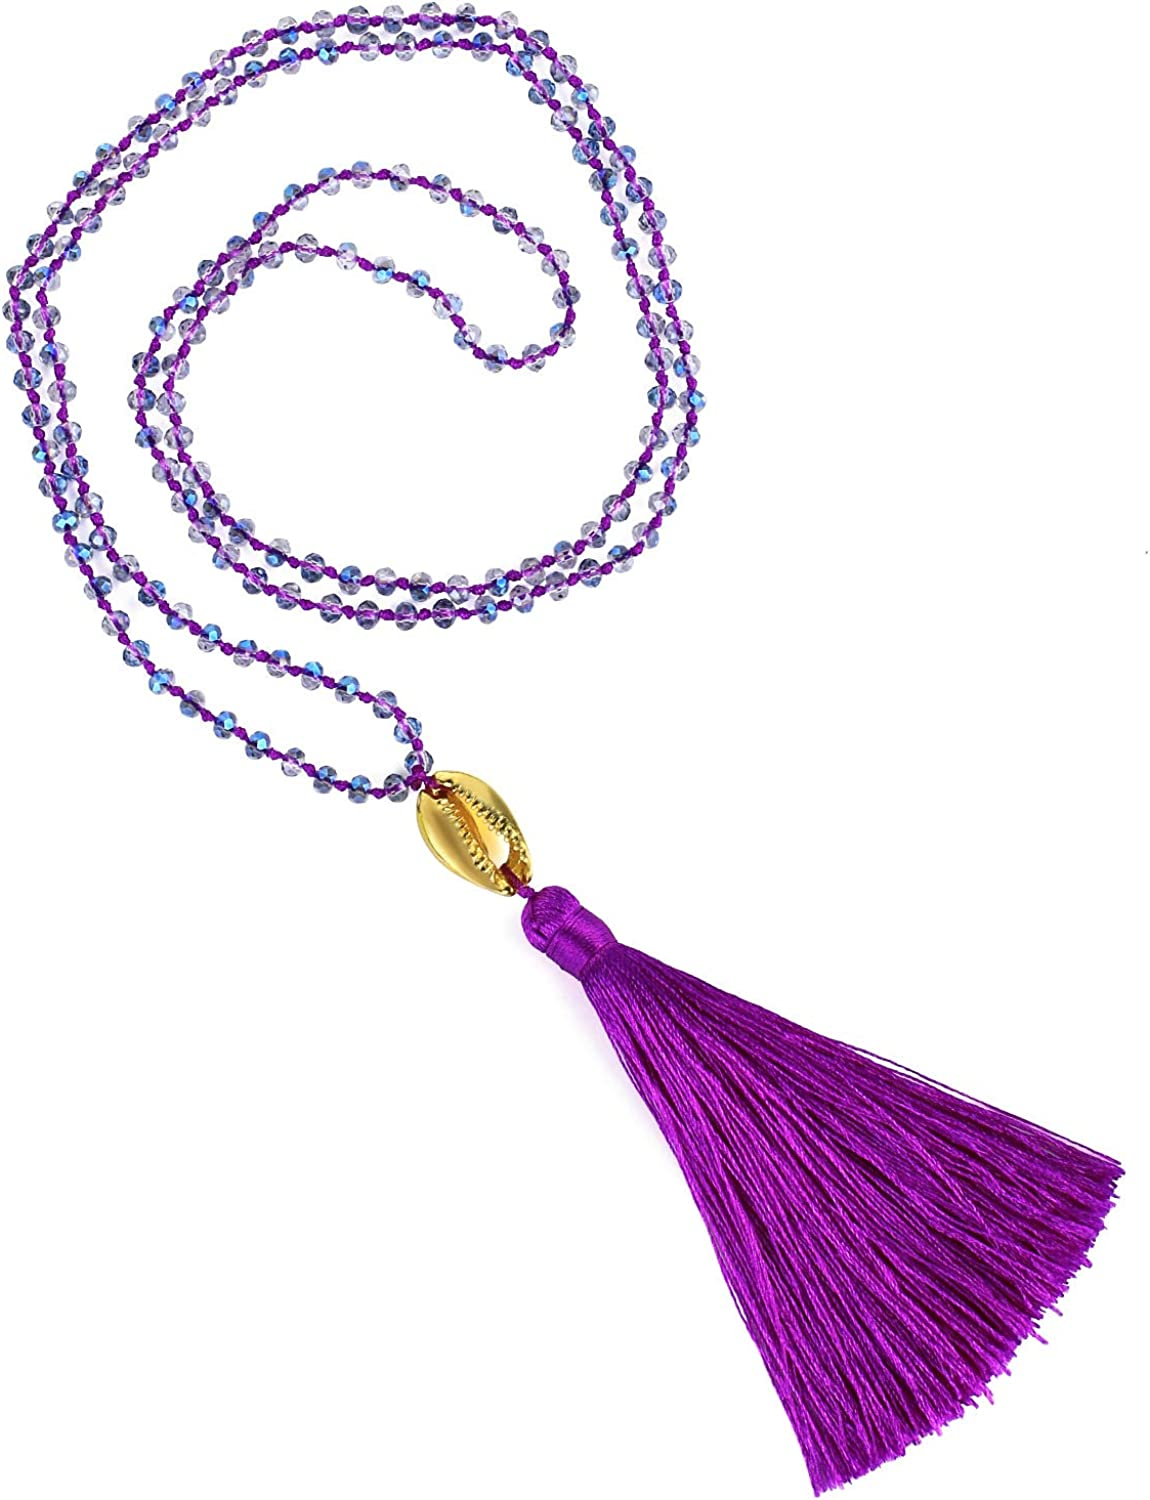 KELITCH Womens Tassels Necklace Shining Crystal Strand Necklace Gold Shell Necklace New 2020